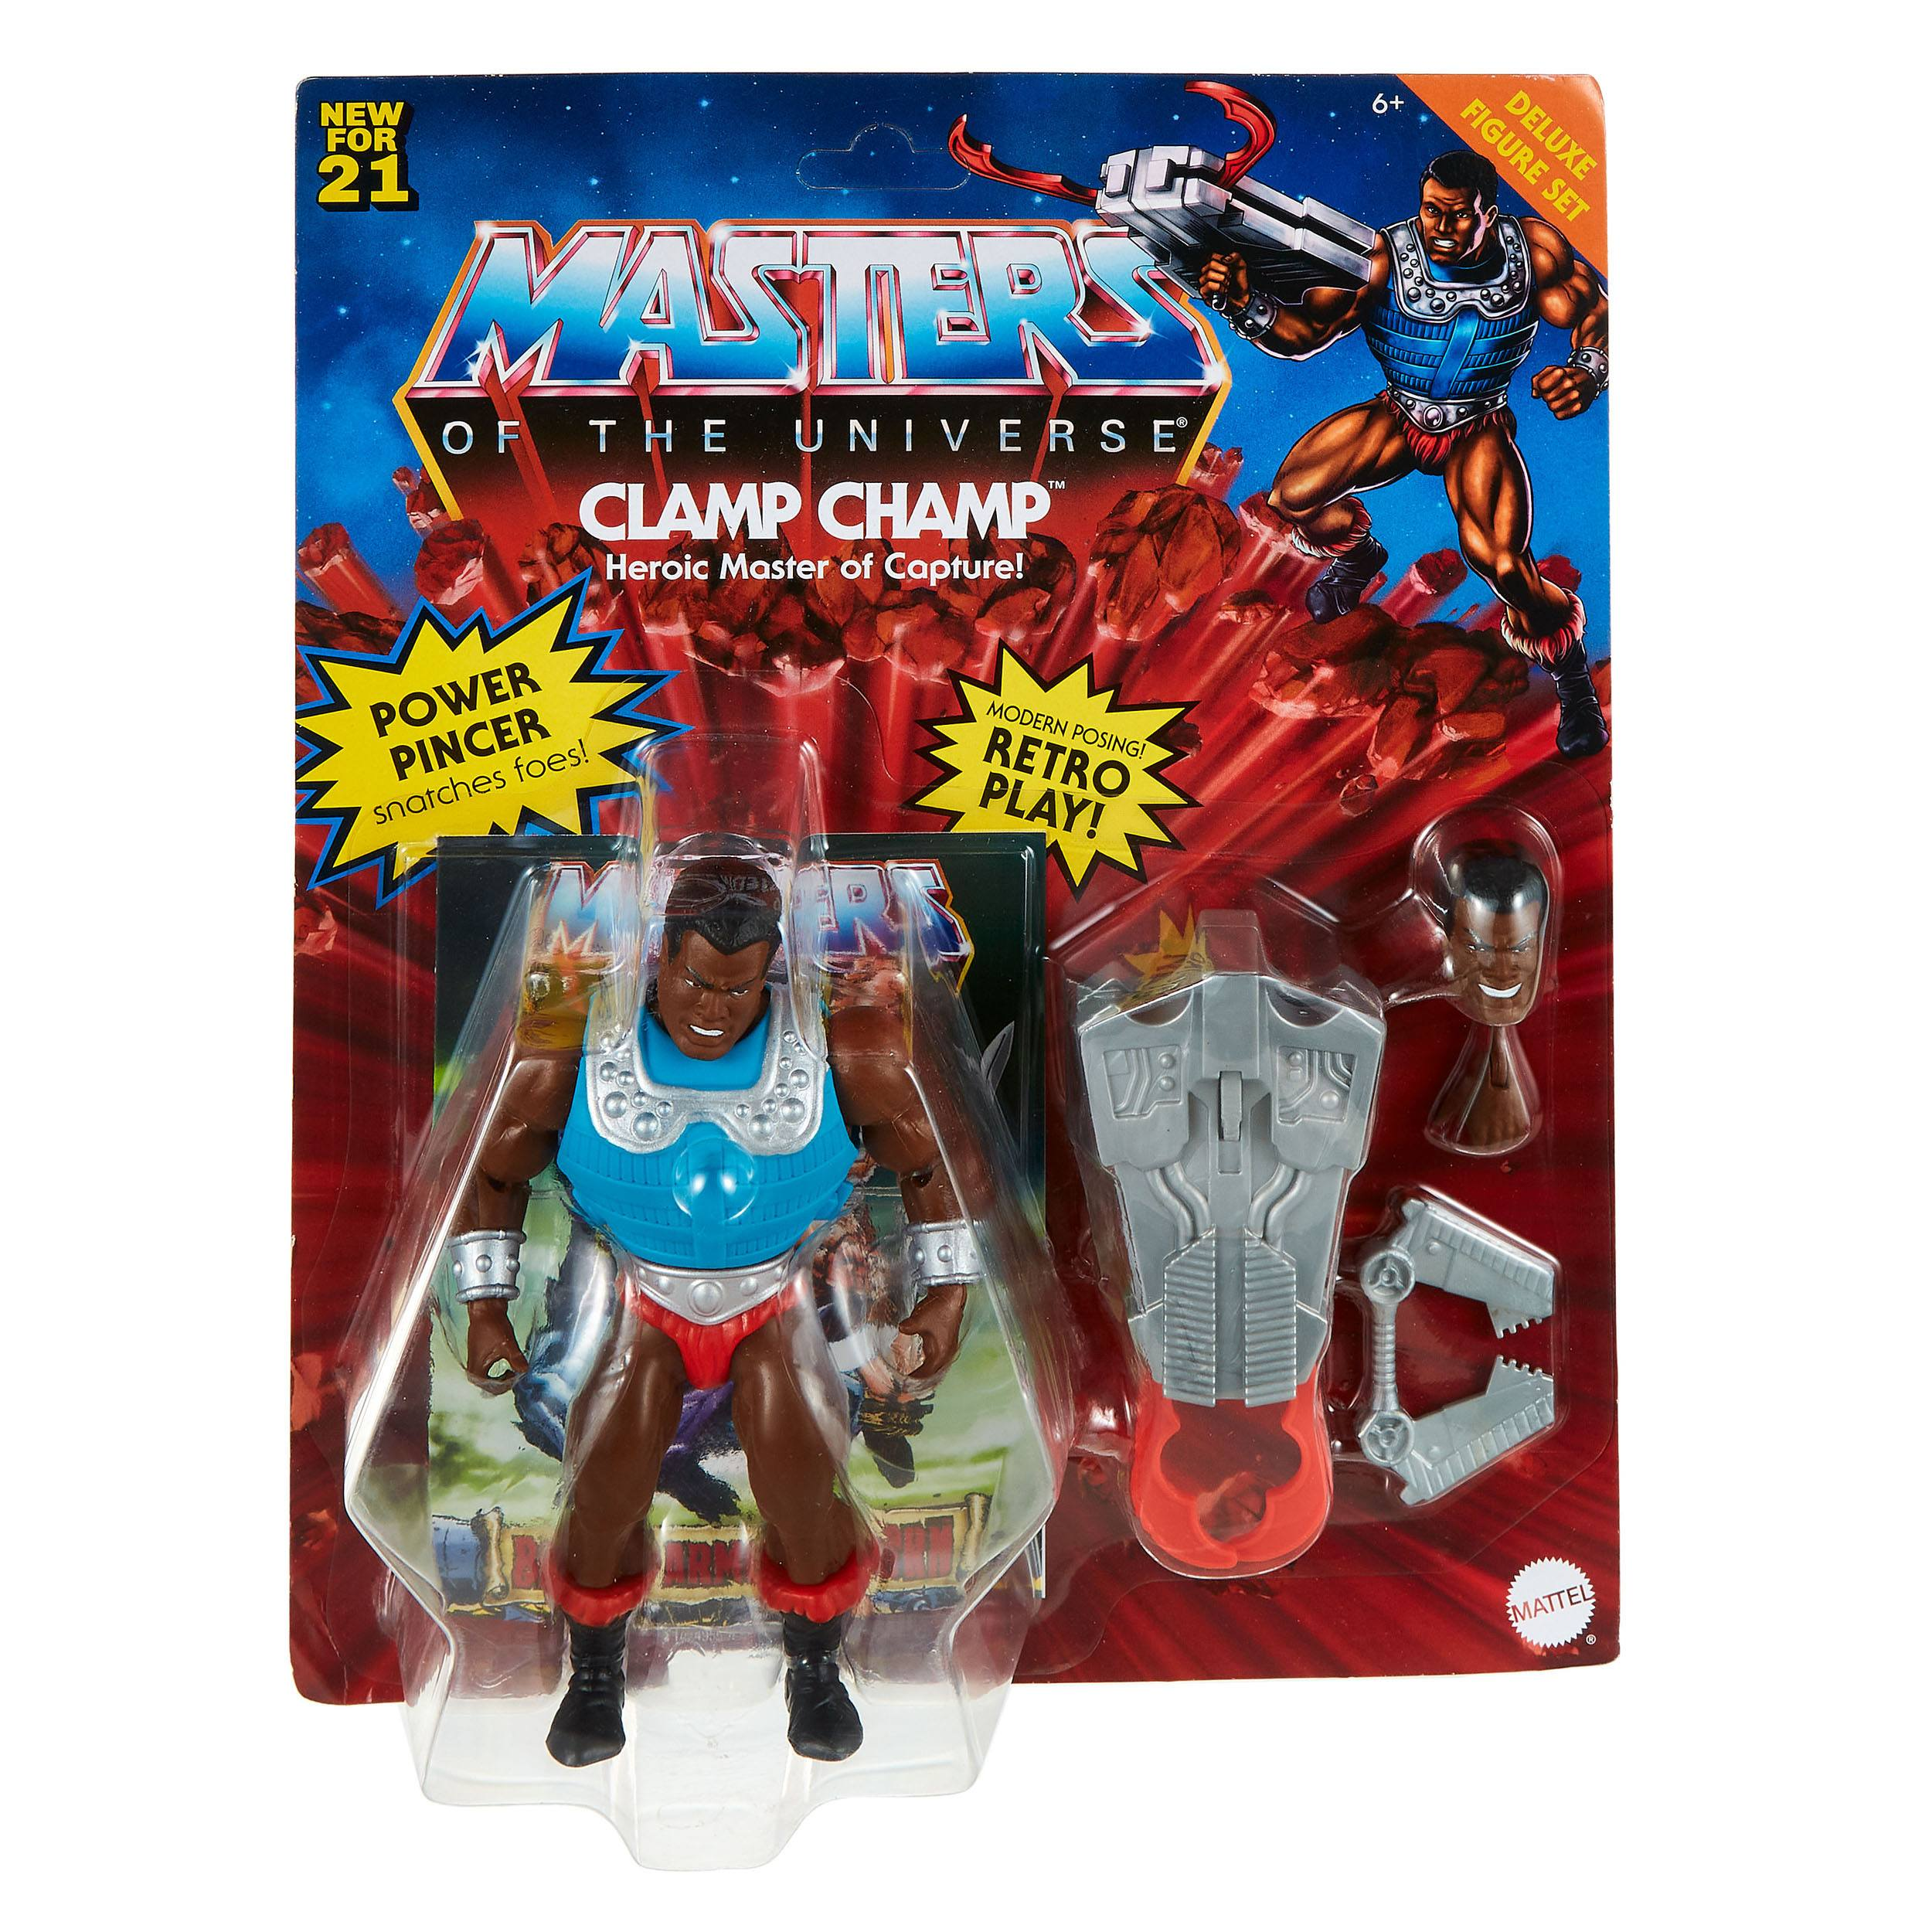 Masters of the Universe Deluxe Actionfigur 2021 Clamp Champ 14 cm MATTGVL79